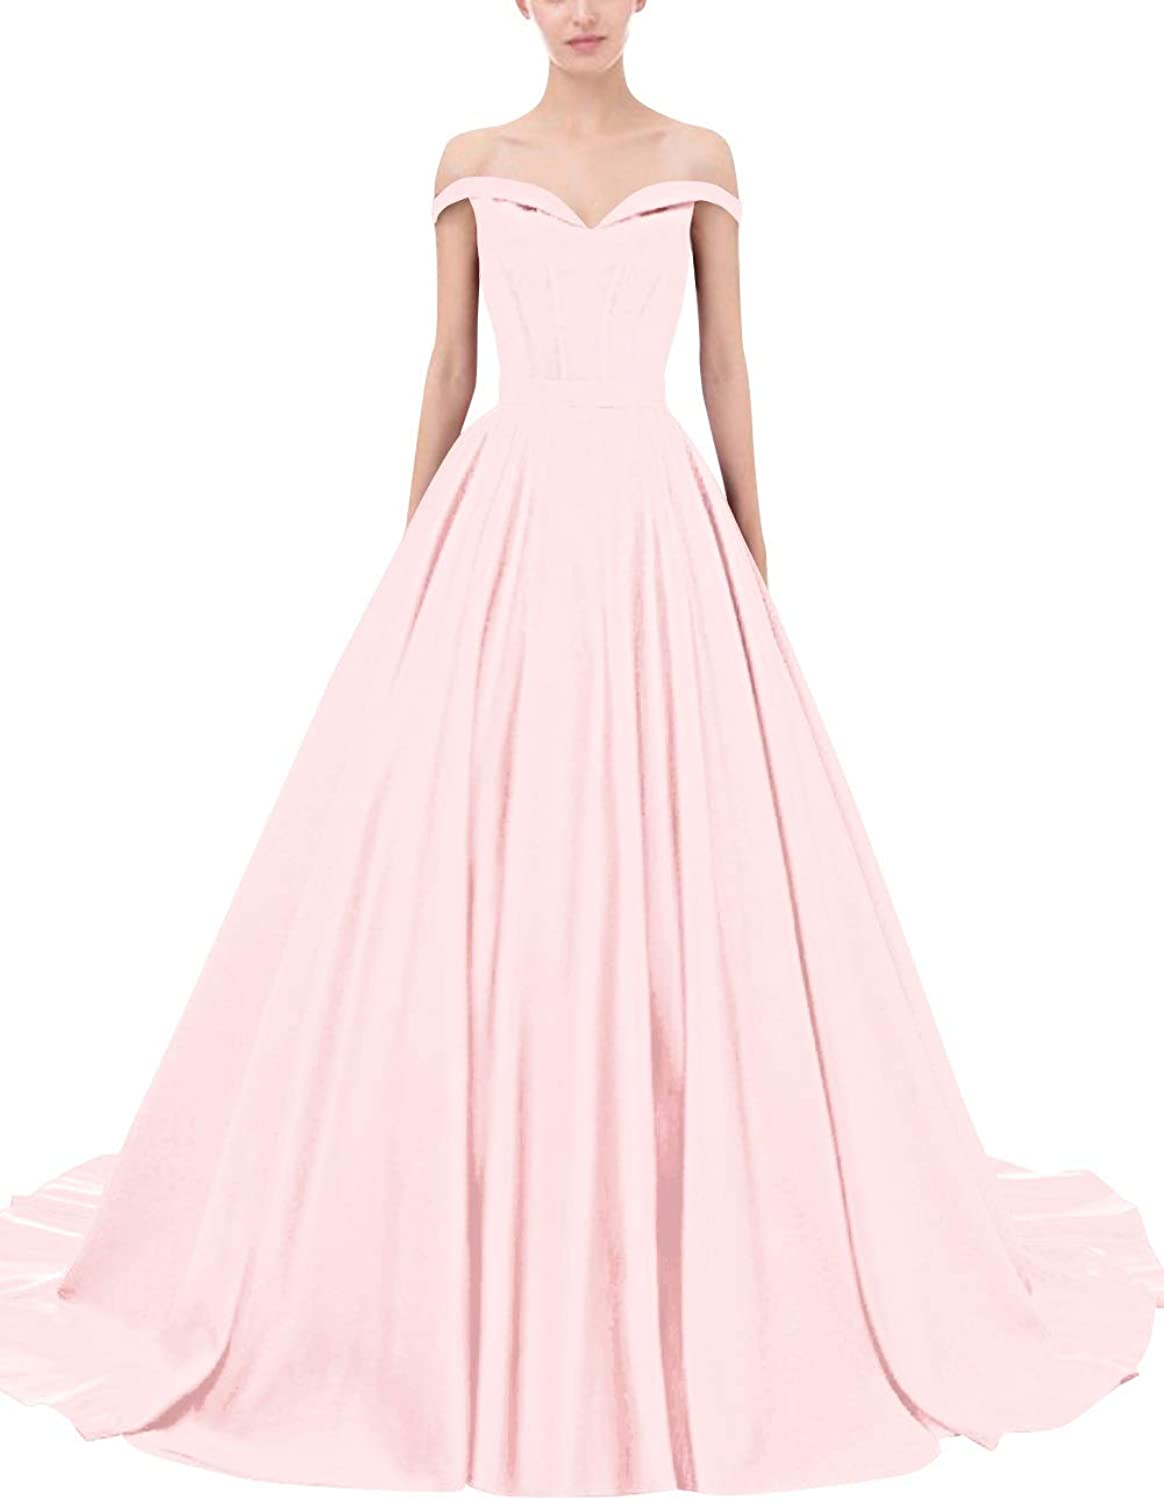 Bess Bridal Women's Ball Gown Lace up Off Shoulder Formal Prom Evening Dress